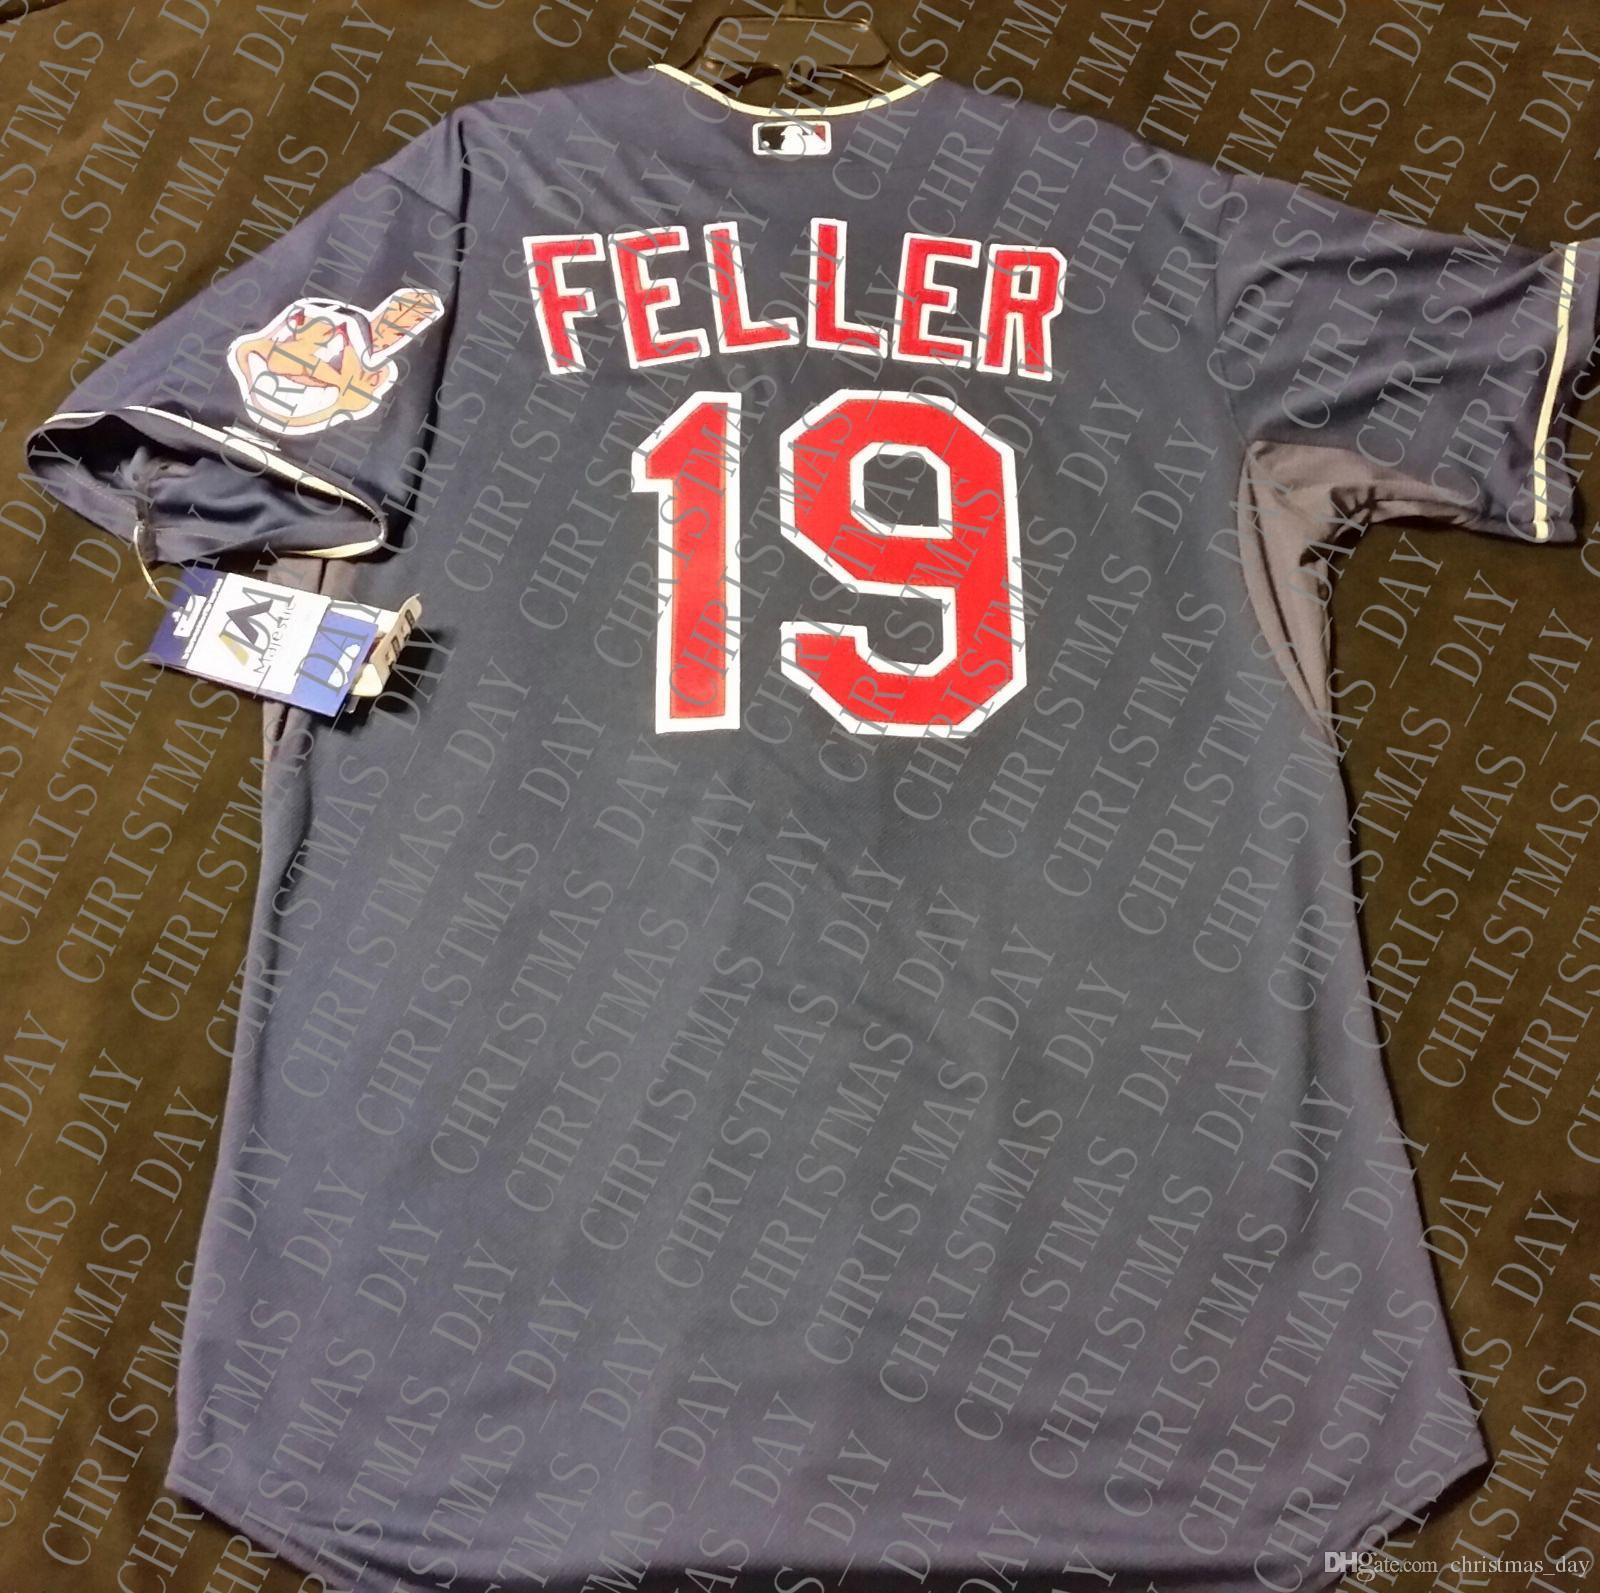 Embroidery BOB FELLER Jersey Stitched